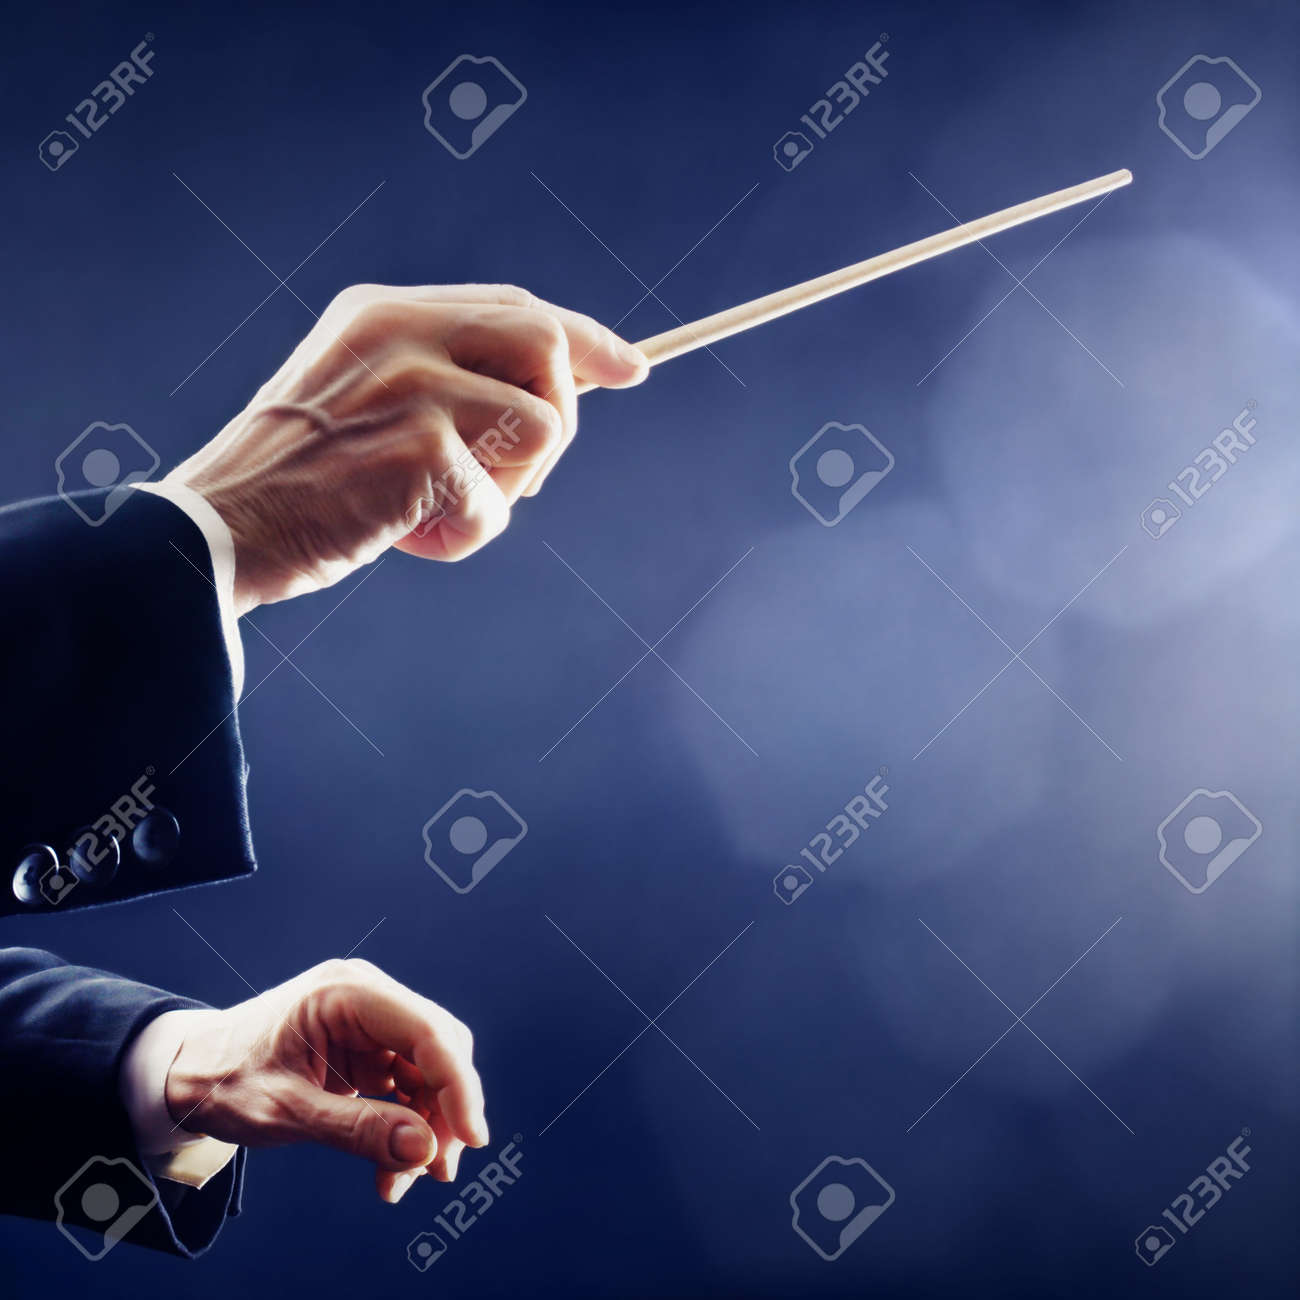 Music conductor hands orchestra conducting Standard-Bild - 20954021